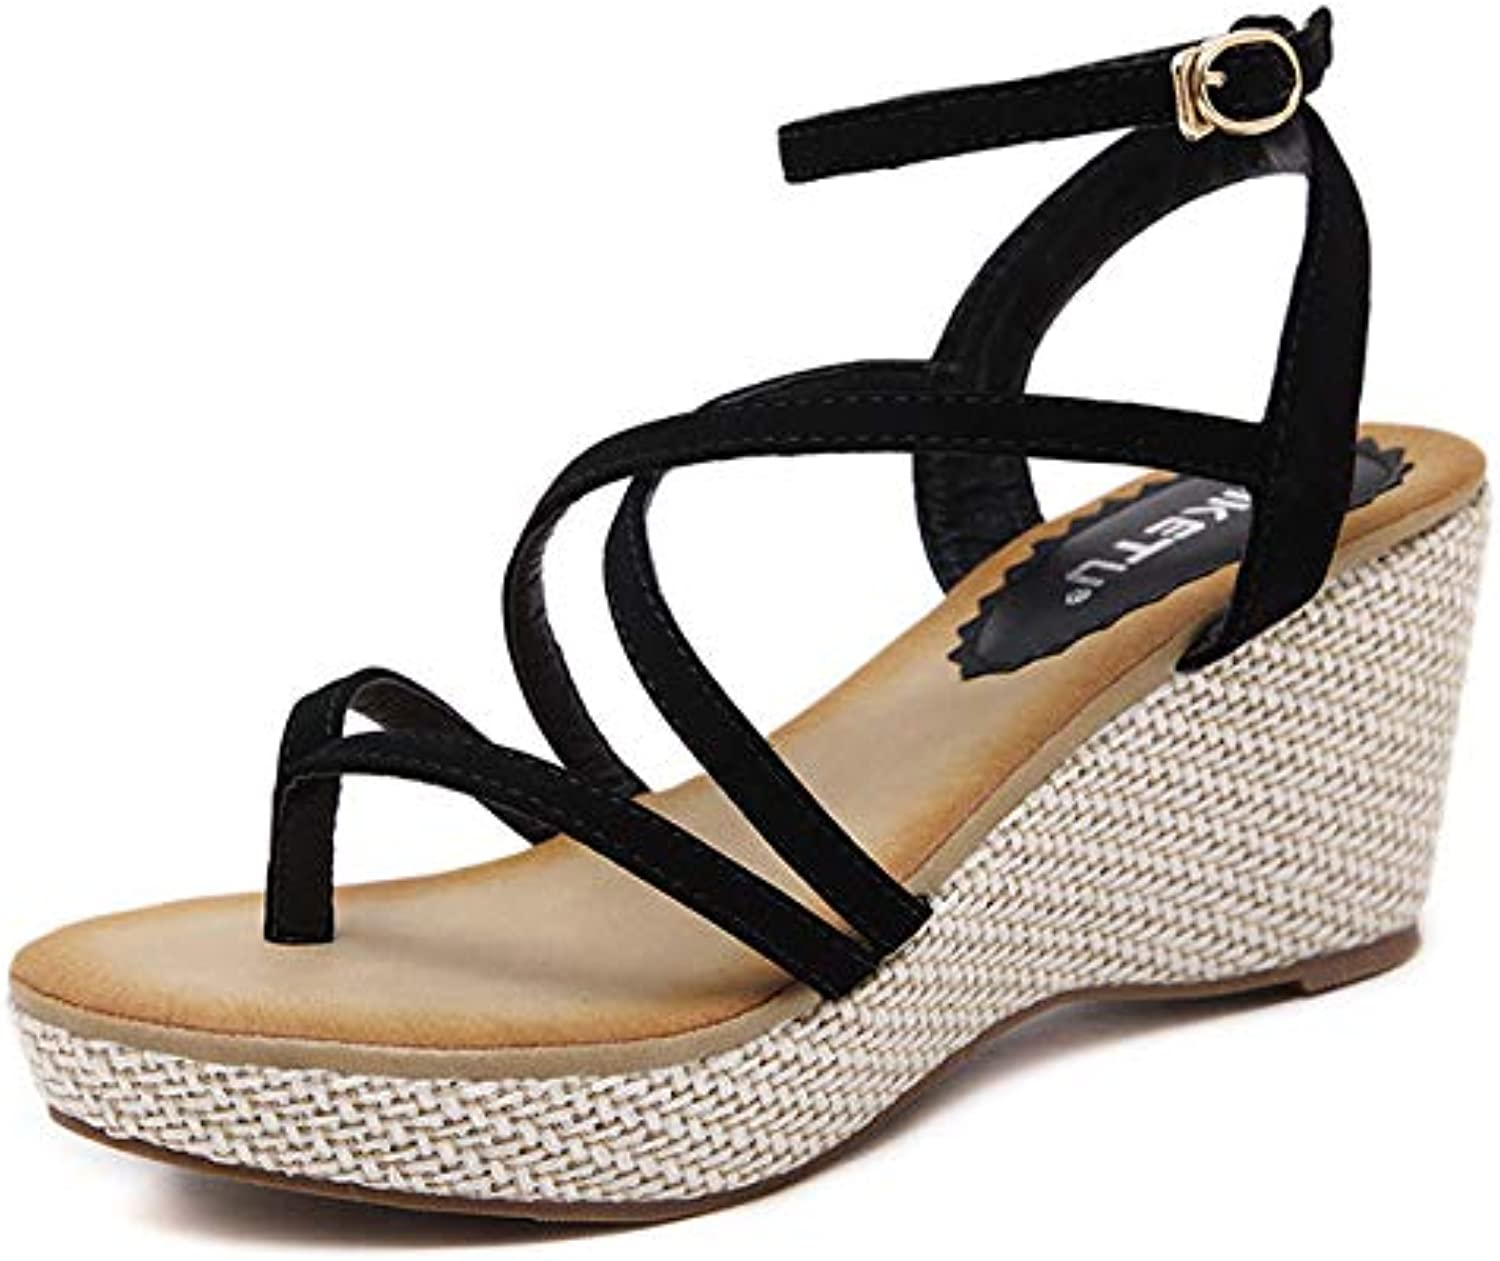 Women's Wedge Sandals, Summer shoes Platform Flats Rome Ankle Strap Casual Clip Toe Sandals, Suitable for Swimming Pool, Vacation, Home, Daily Wear